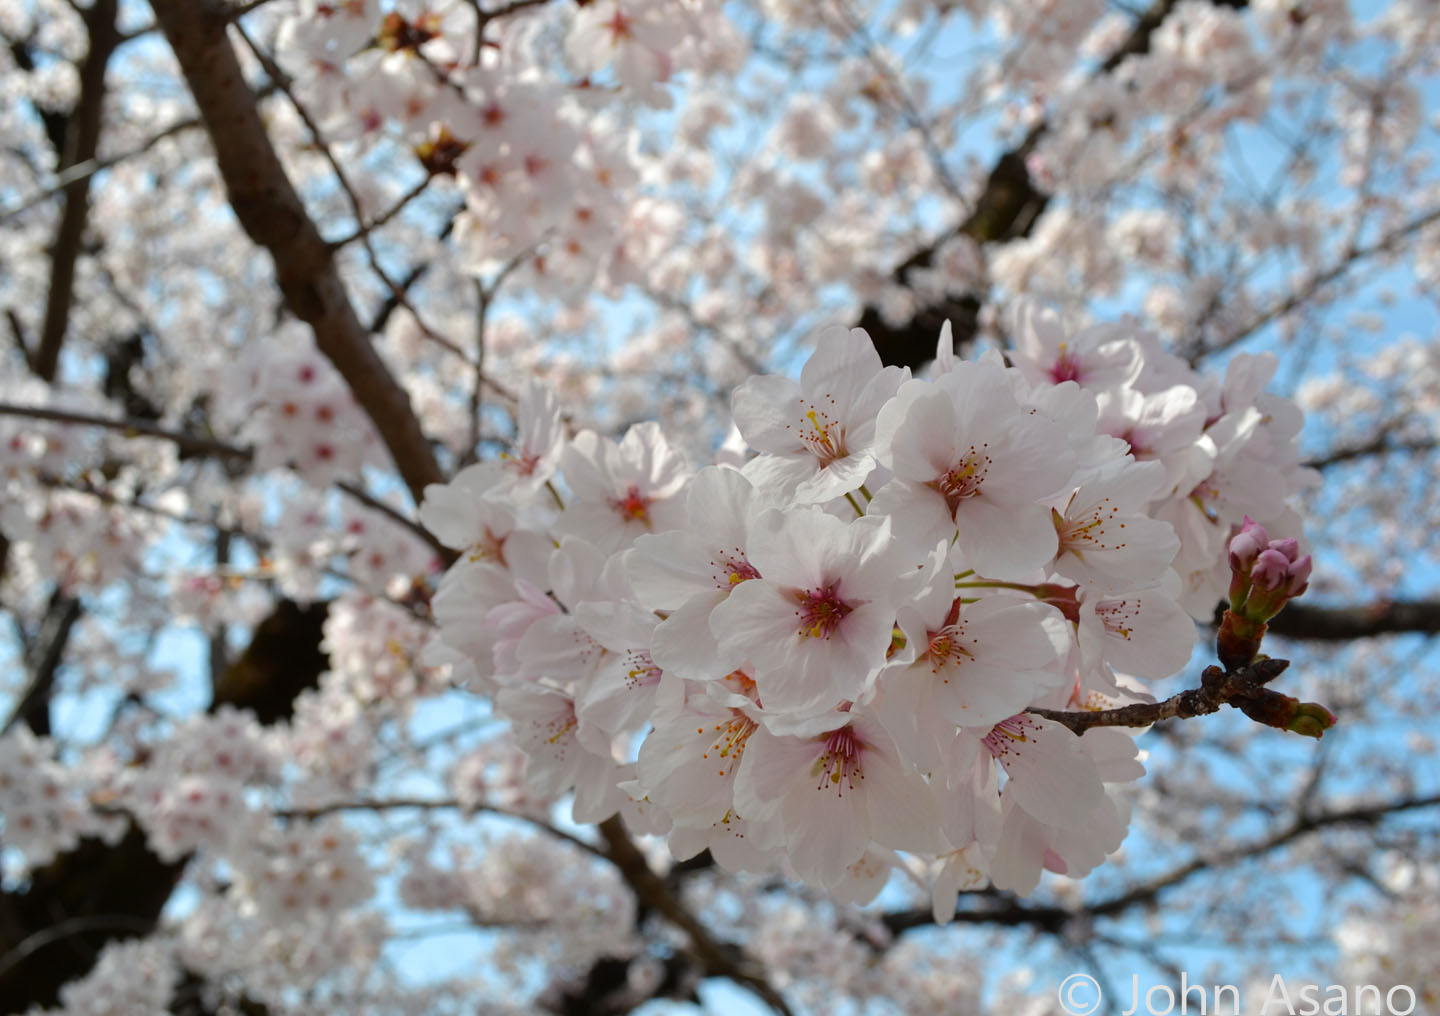 Cherry Blossoms at Gifu Park in Gifu City